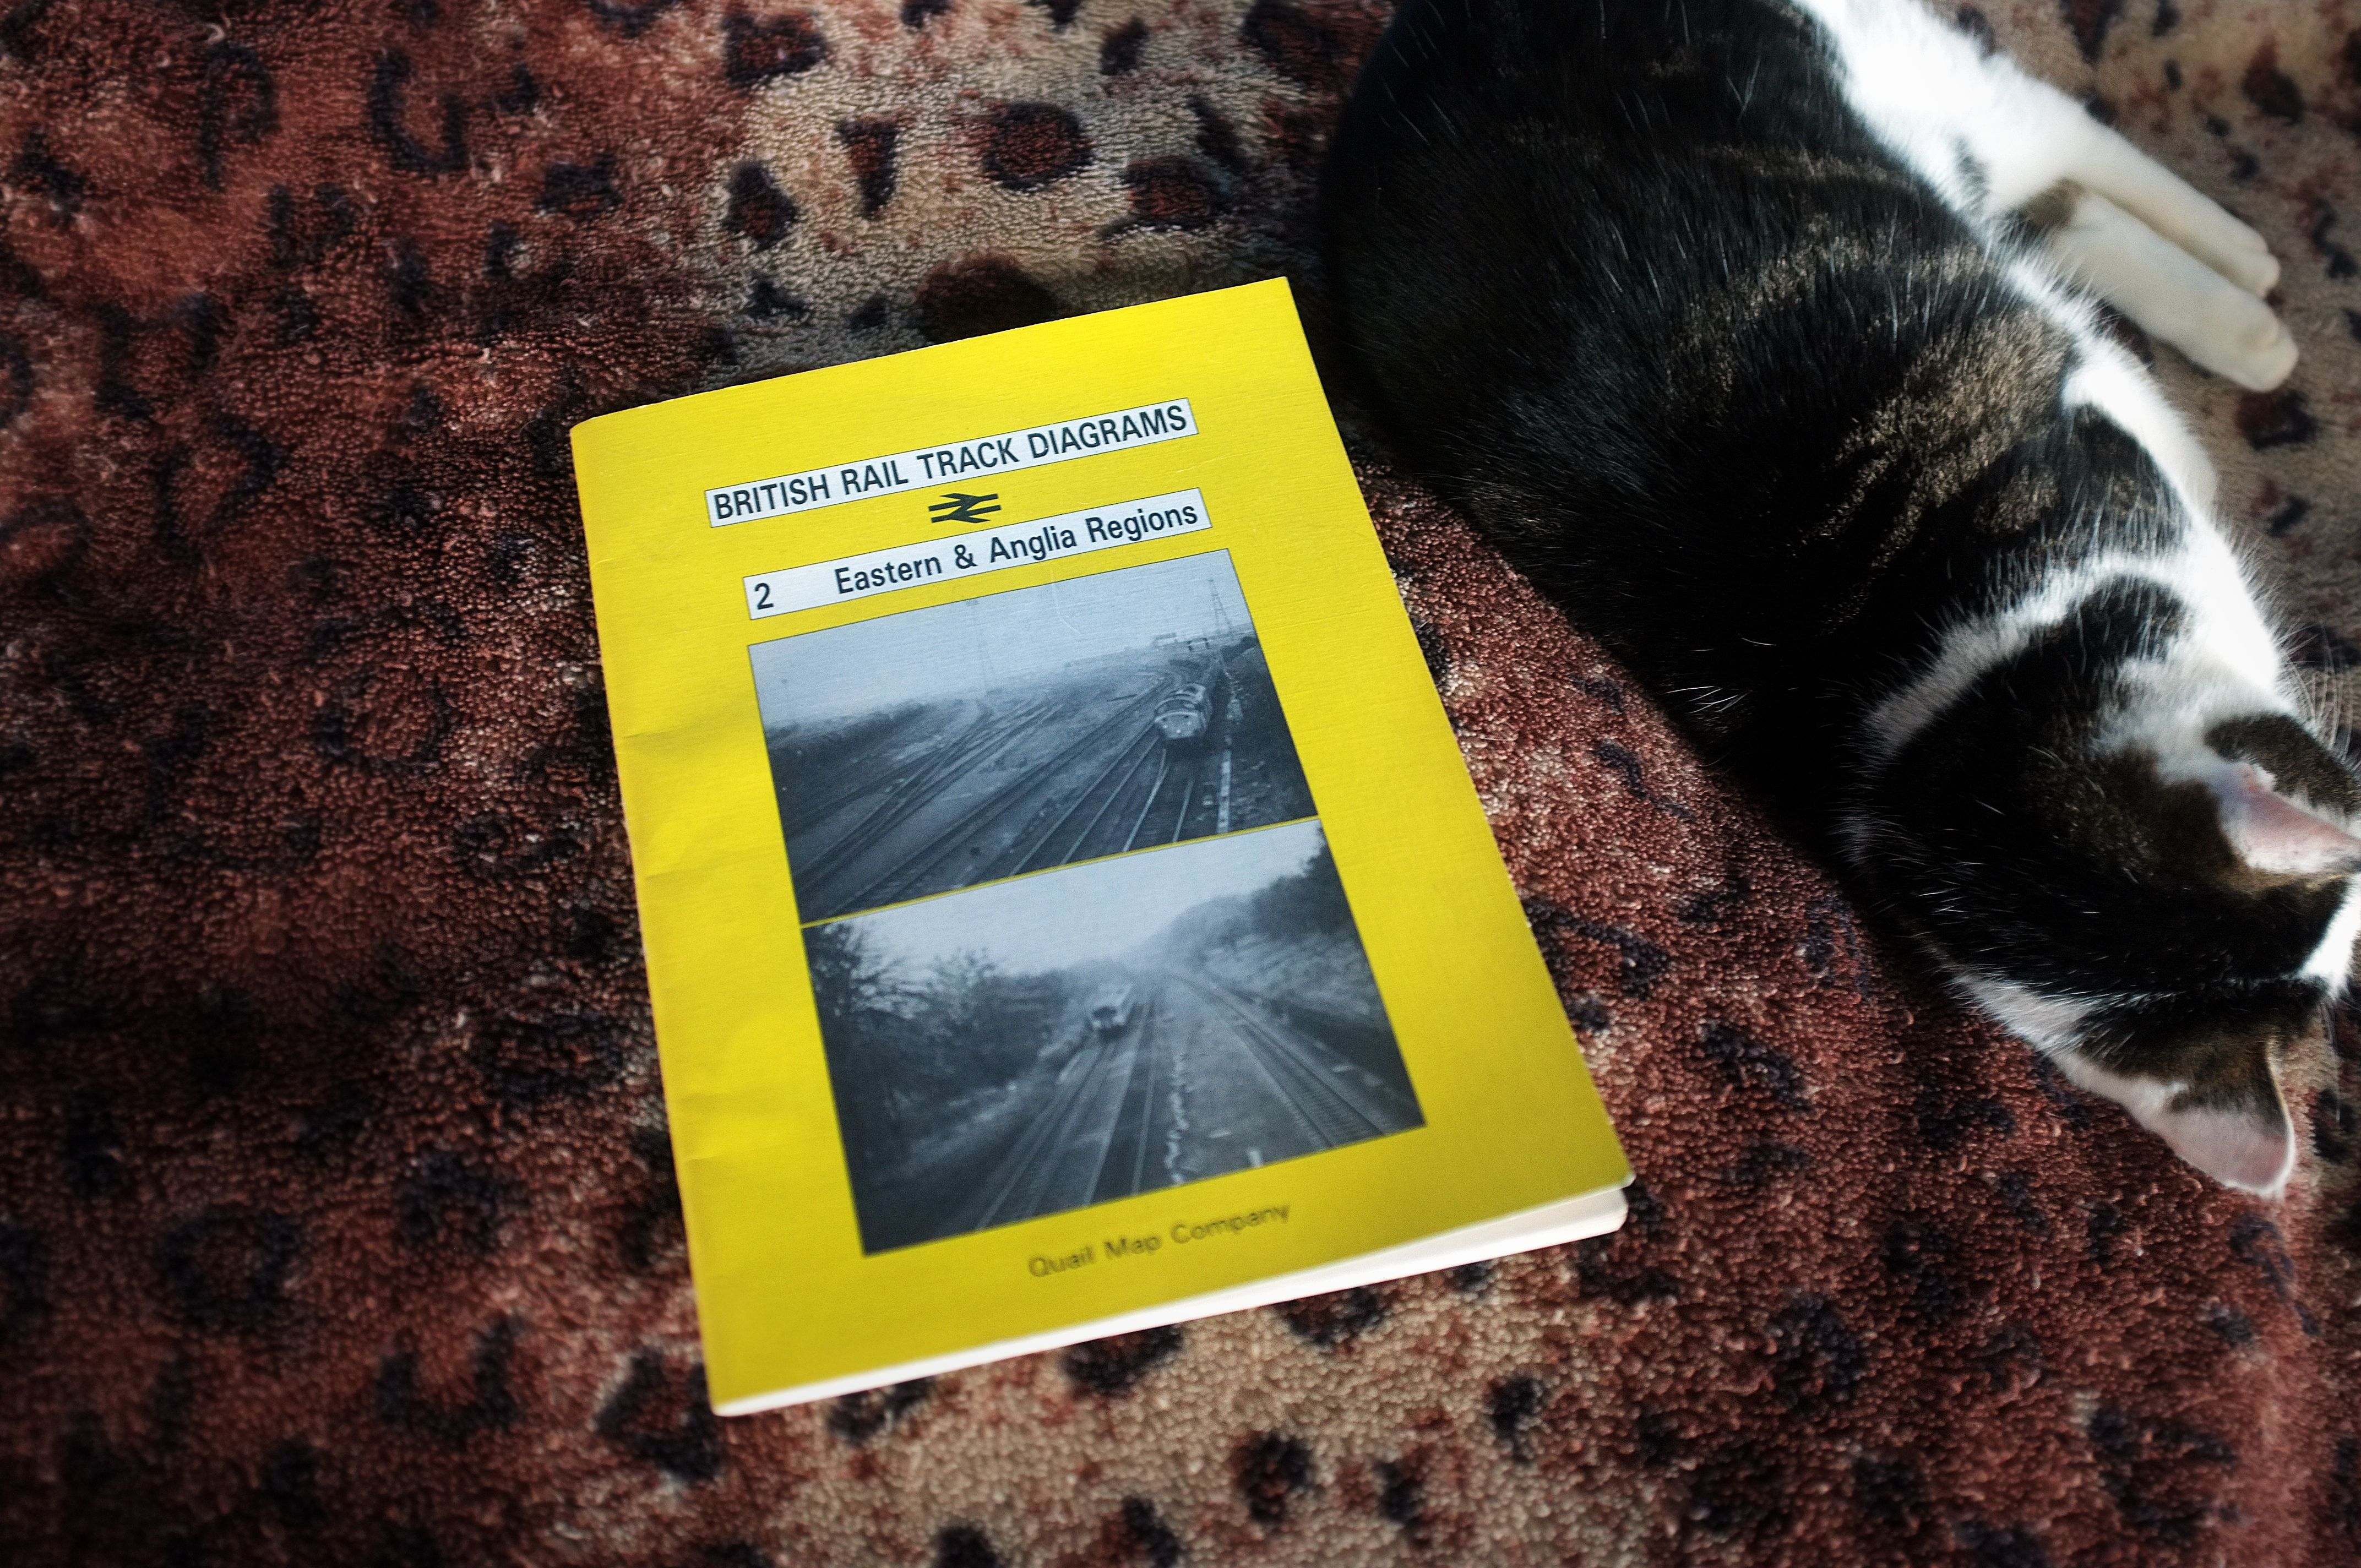 """My cat, asleep next to a copy of """"British Rail Track Diagrams"""" No 2, Eastern Region"""